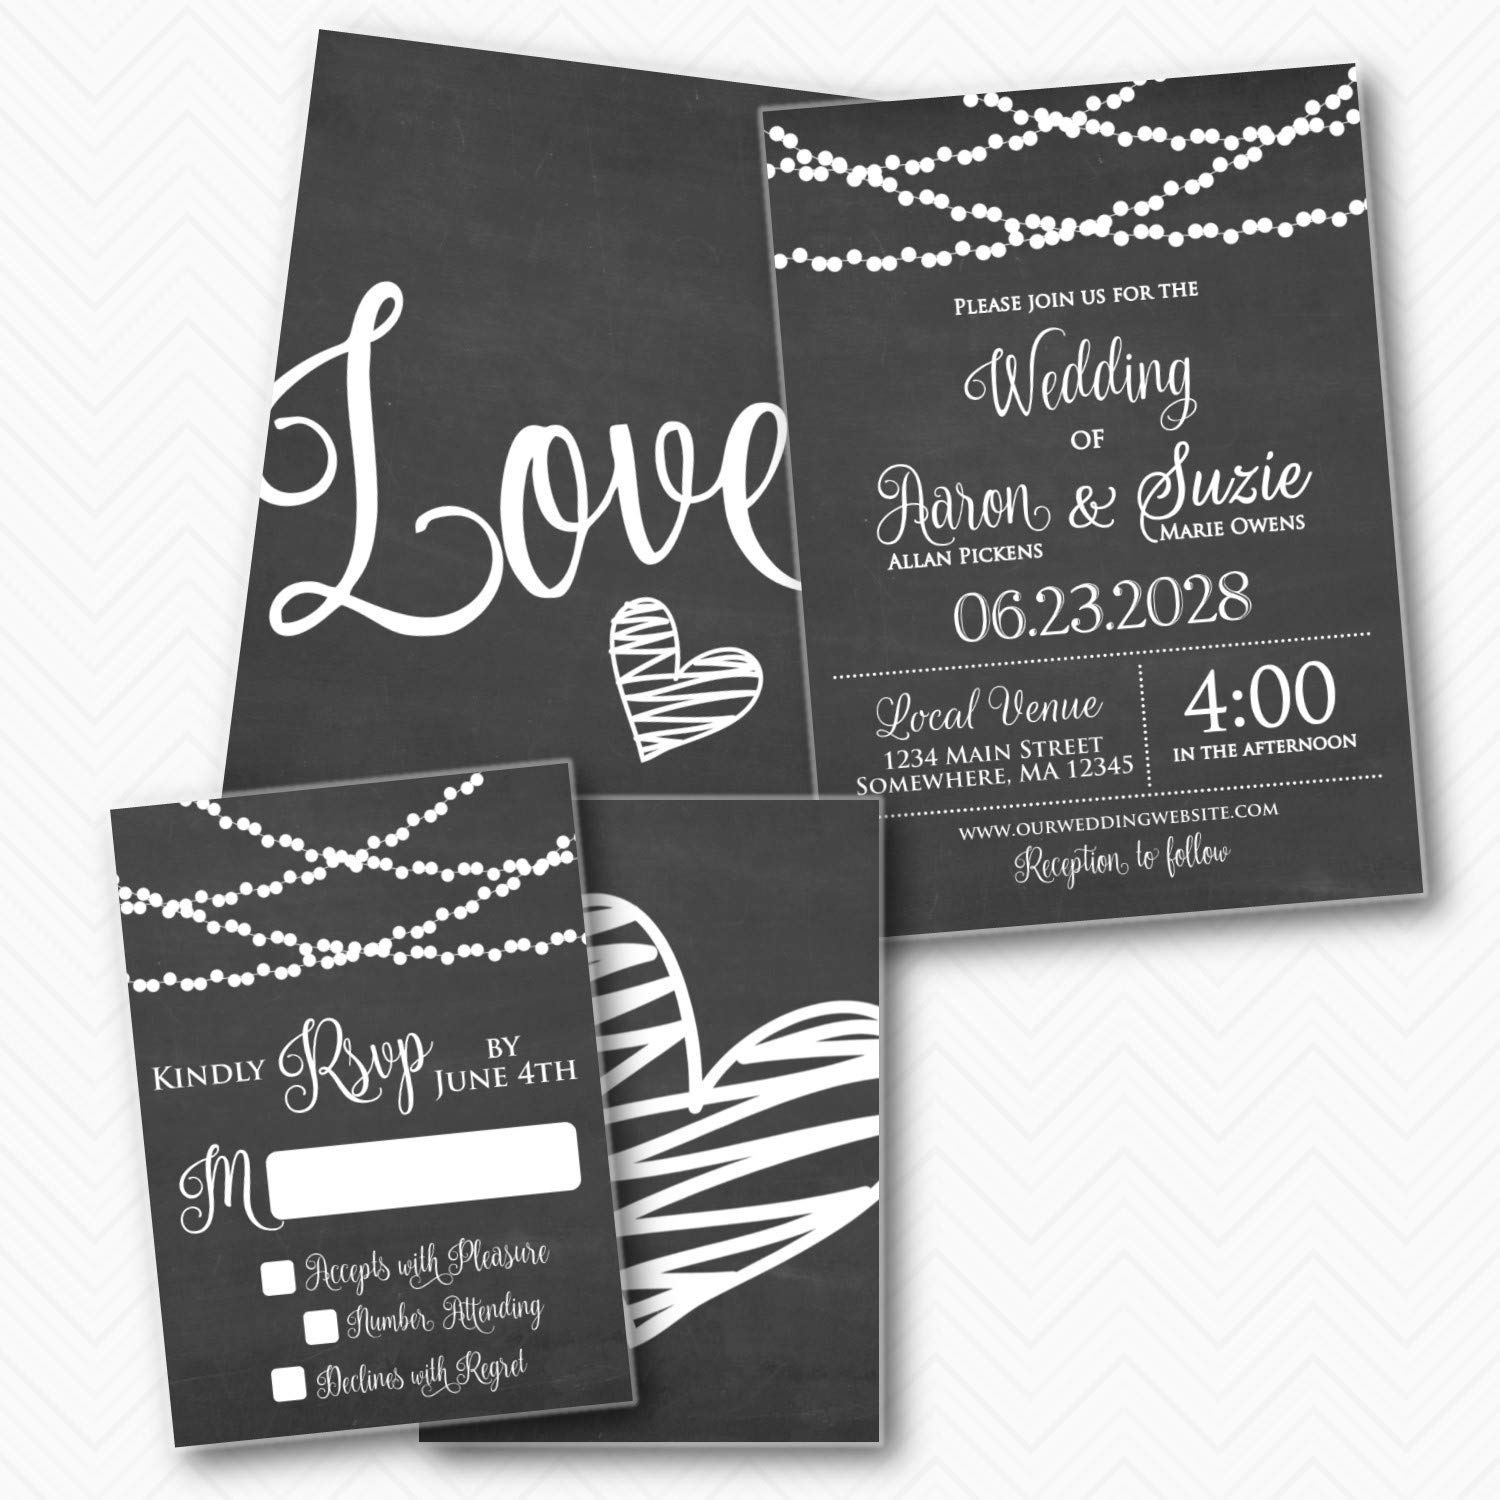 Chalkboard Lights Mail order cheap Popular shop is the lowest price challenge Wedding Invitation set RSVP with Black White w